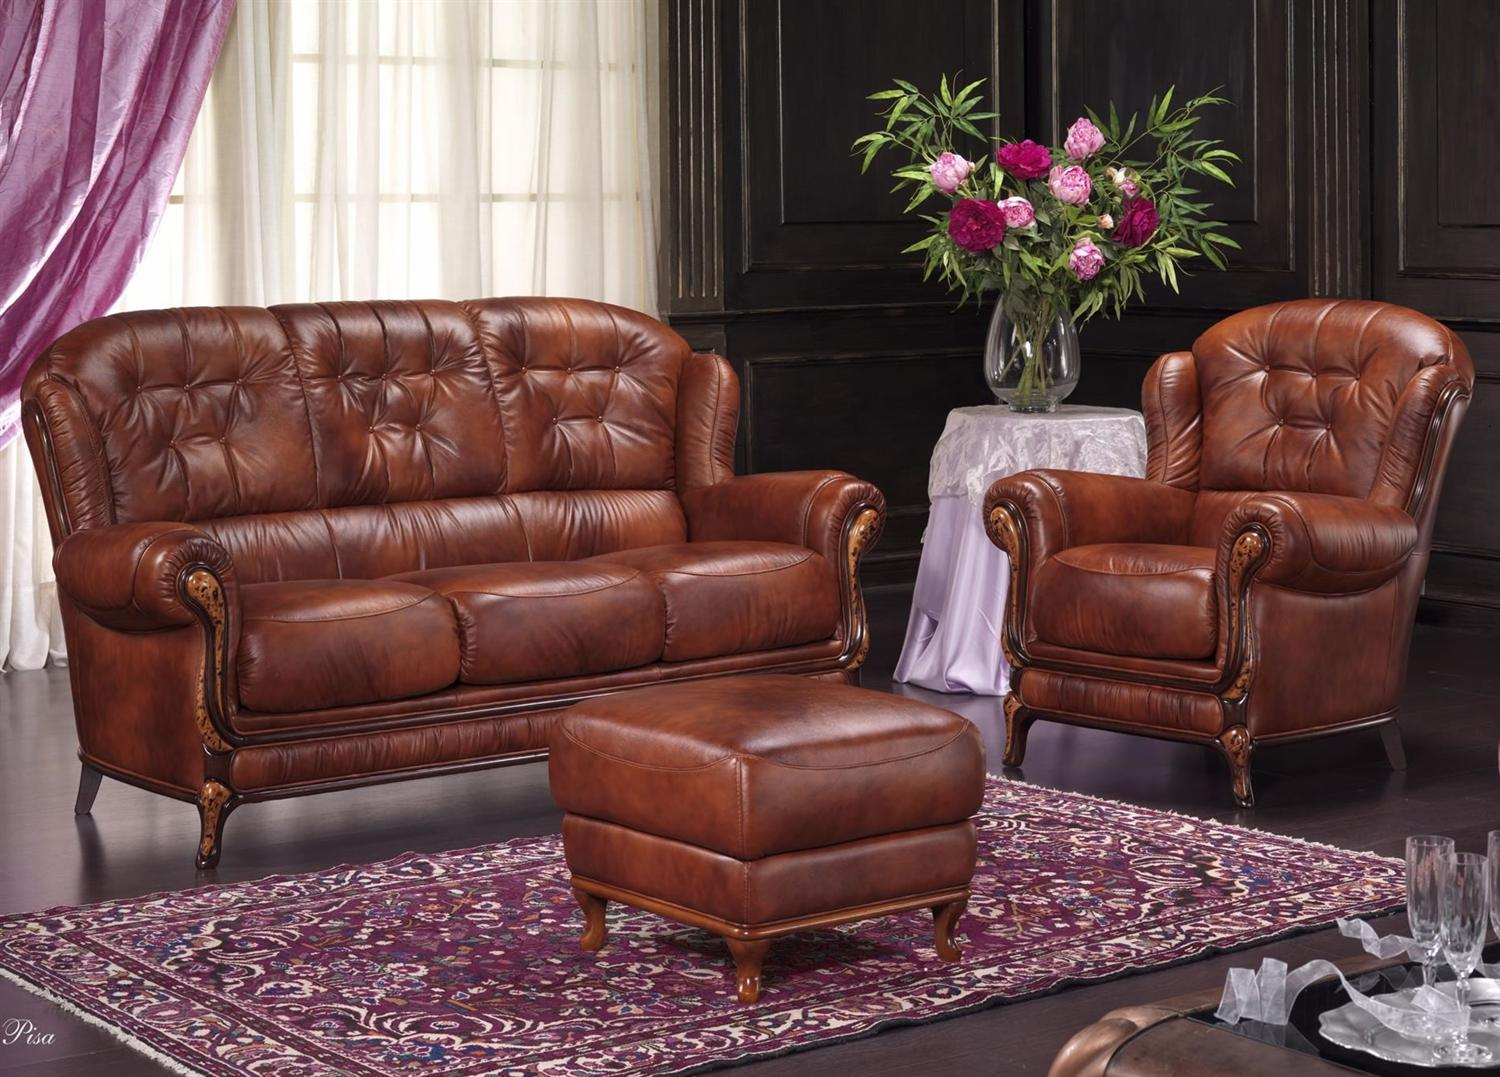 Bardi Pisa Leather Sofa Collection From Tannahill